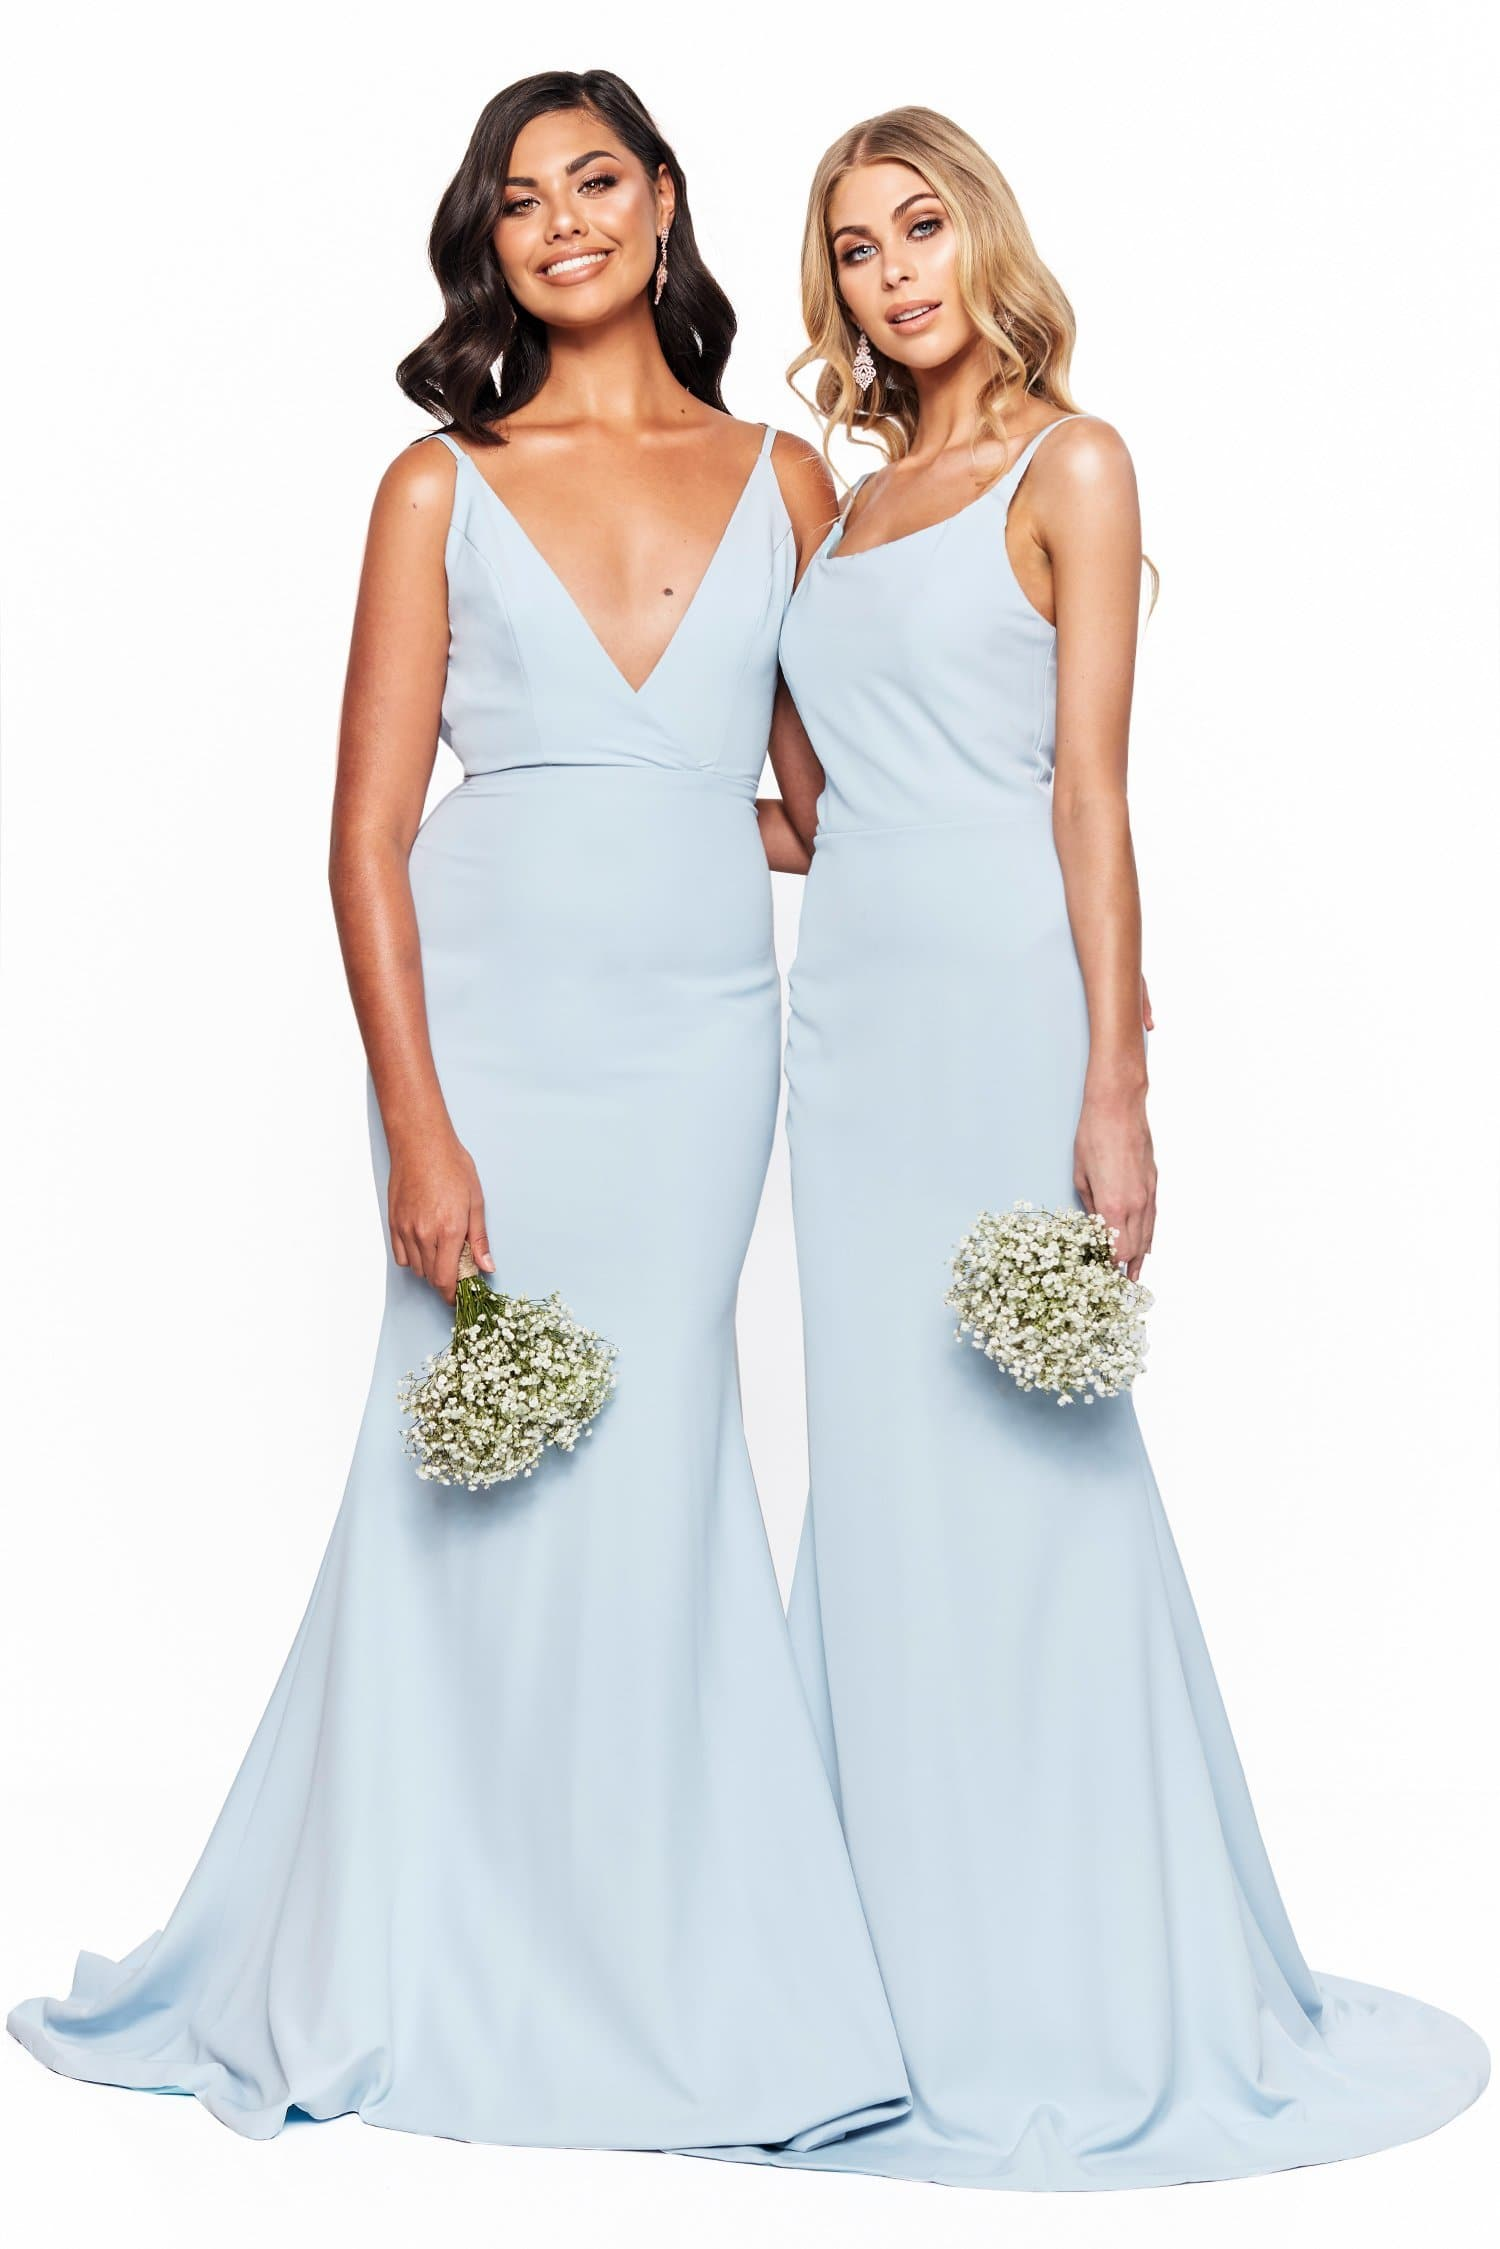 A&N Bridesmaids Jada - Sky Blue V-Neck Backless Mermaid Ponti Gown